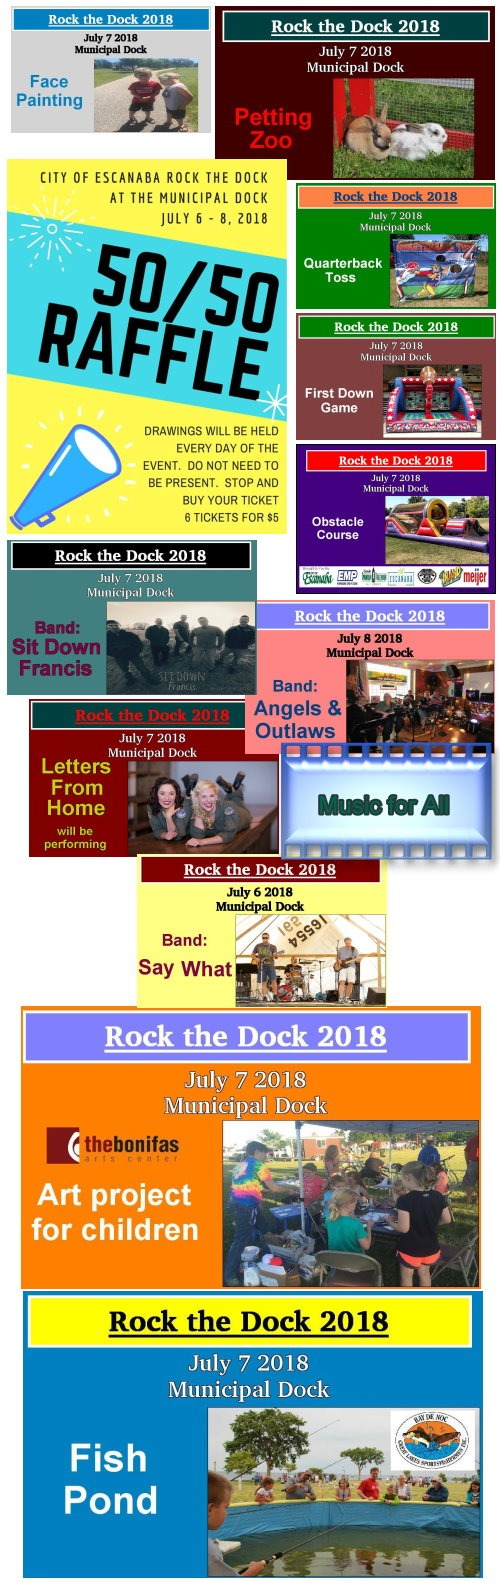 Escanaba Rock the Dock 2018